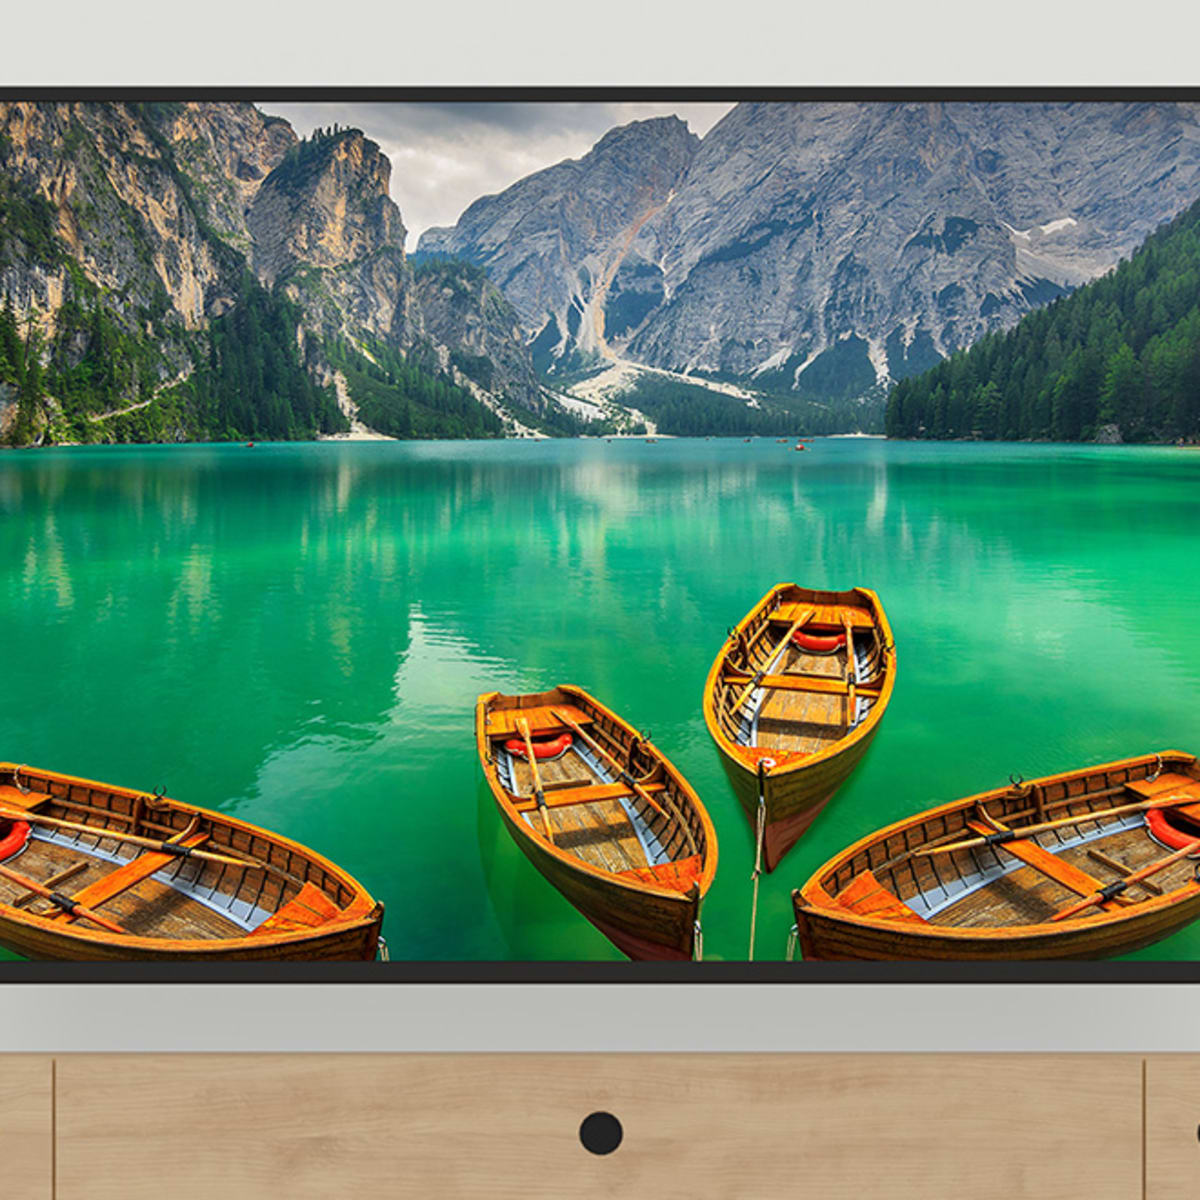 Buying a 2017 Vizio D Series TV? Read This First - Reviewed Televisions